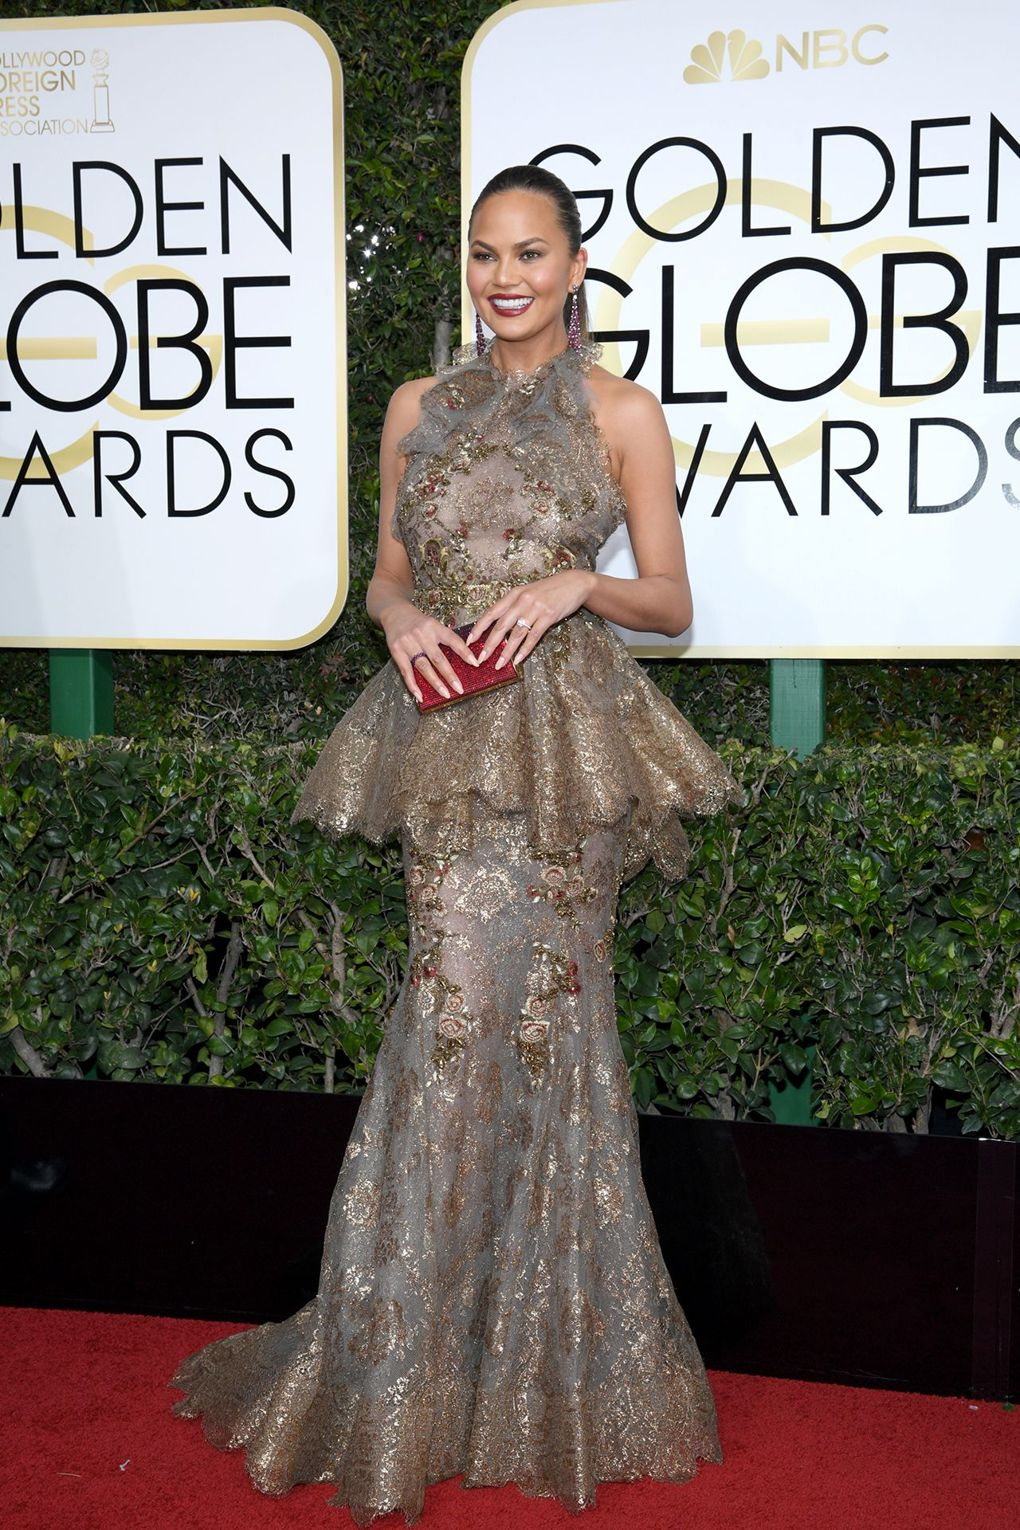 Chrissy Teigen at The Golden Globes 2017